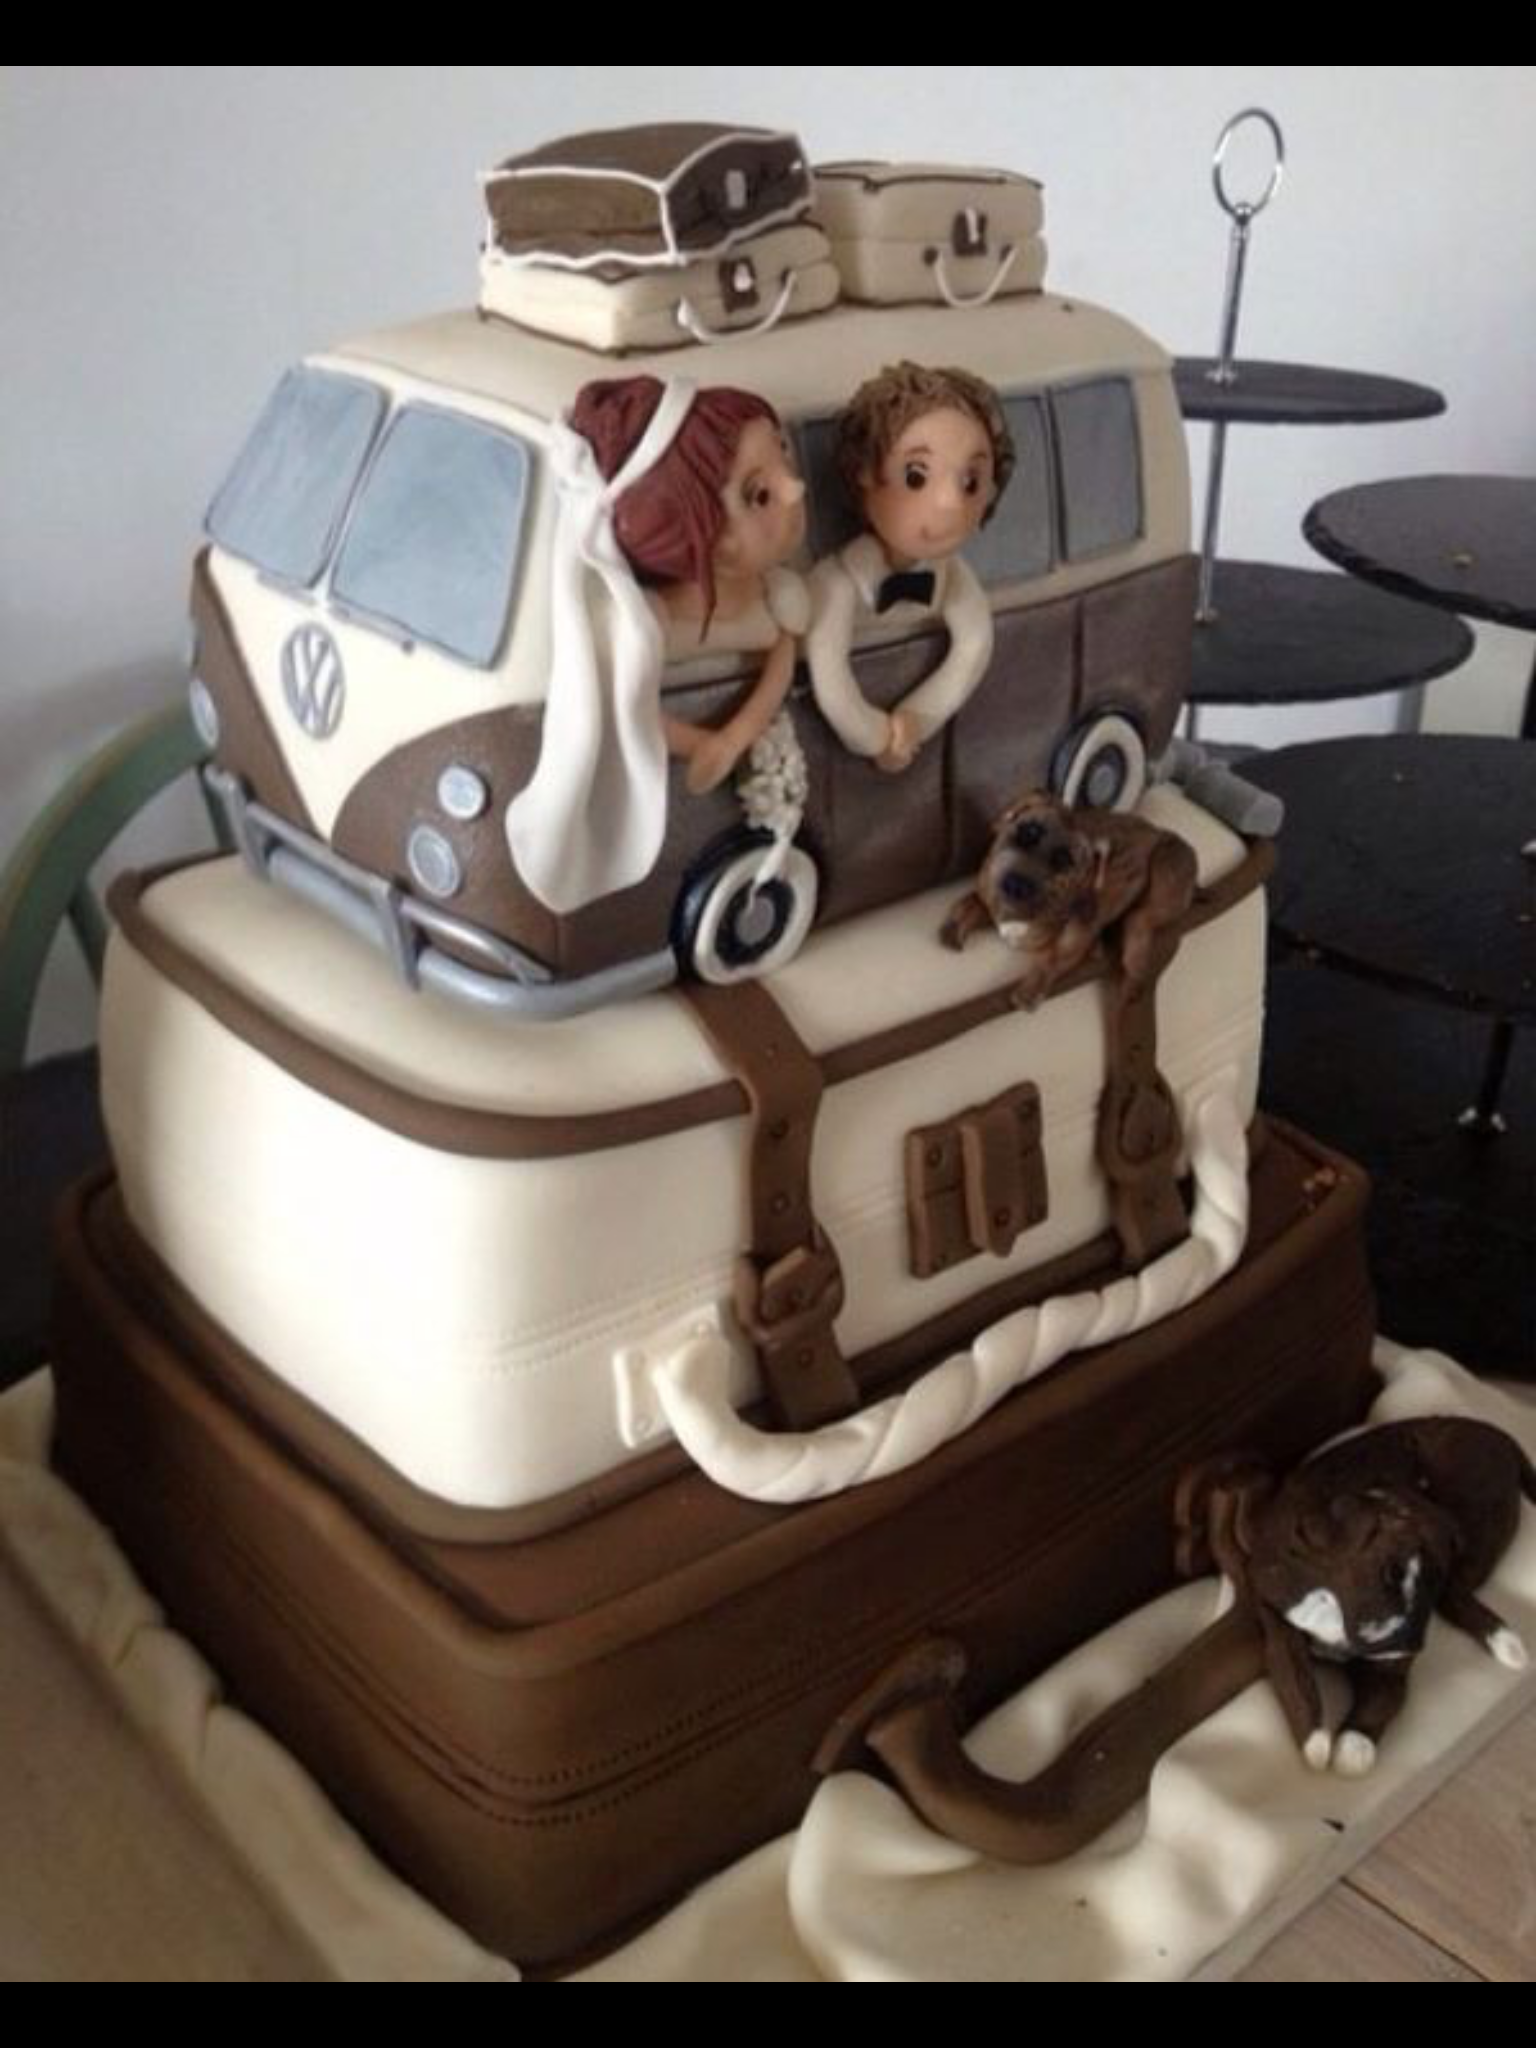 Pin By Bj Hegstad On Vw Pinterest Cake Wedding Cakes And Cake